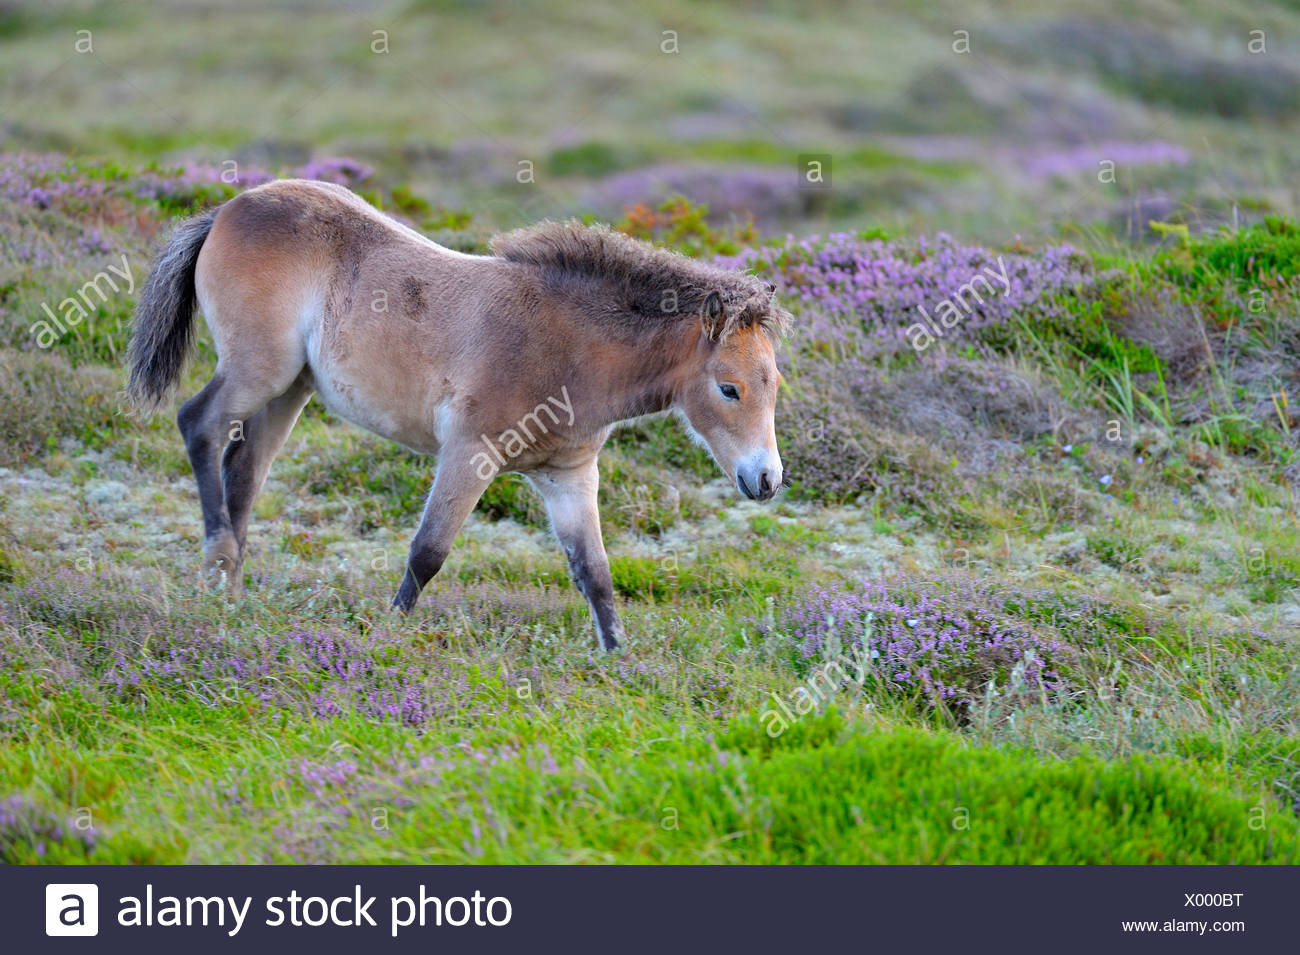 Exmoor pony (Equus przewalskii f. caballus), foal in the conservation area at blooming heath, Netherlands, Texel, Duenen von Texel Nationalpark - Stock Image